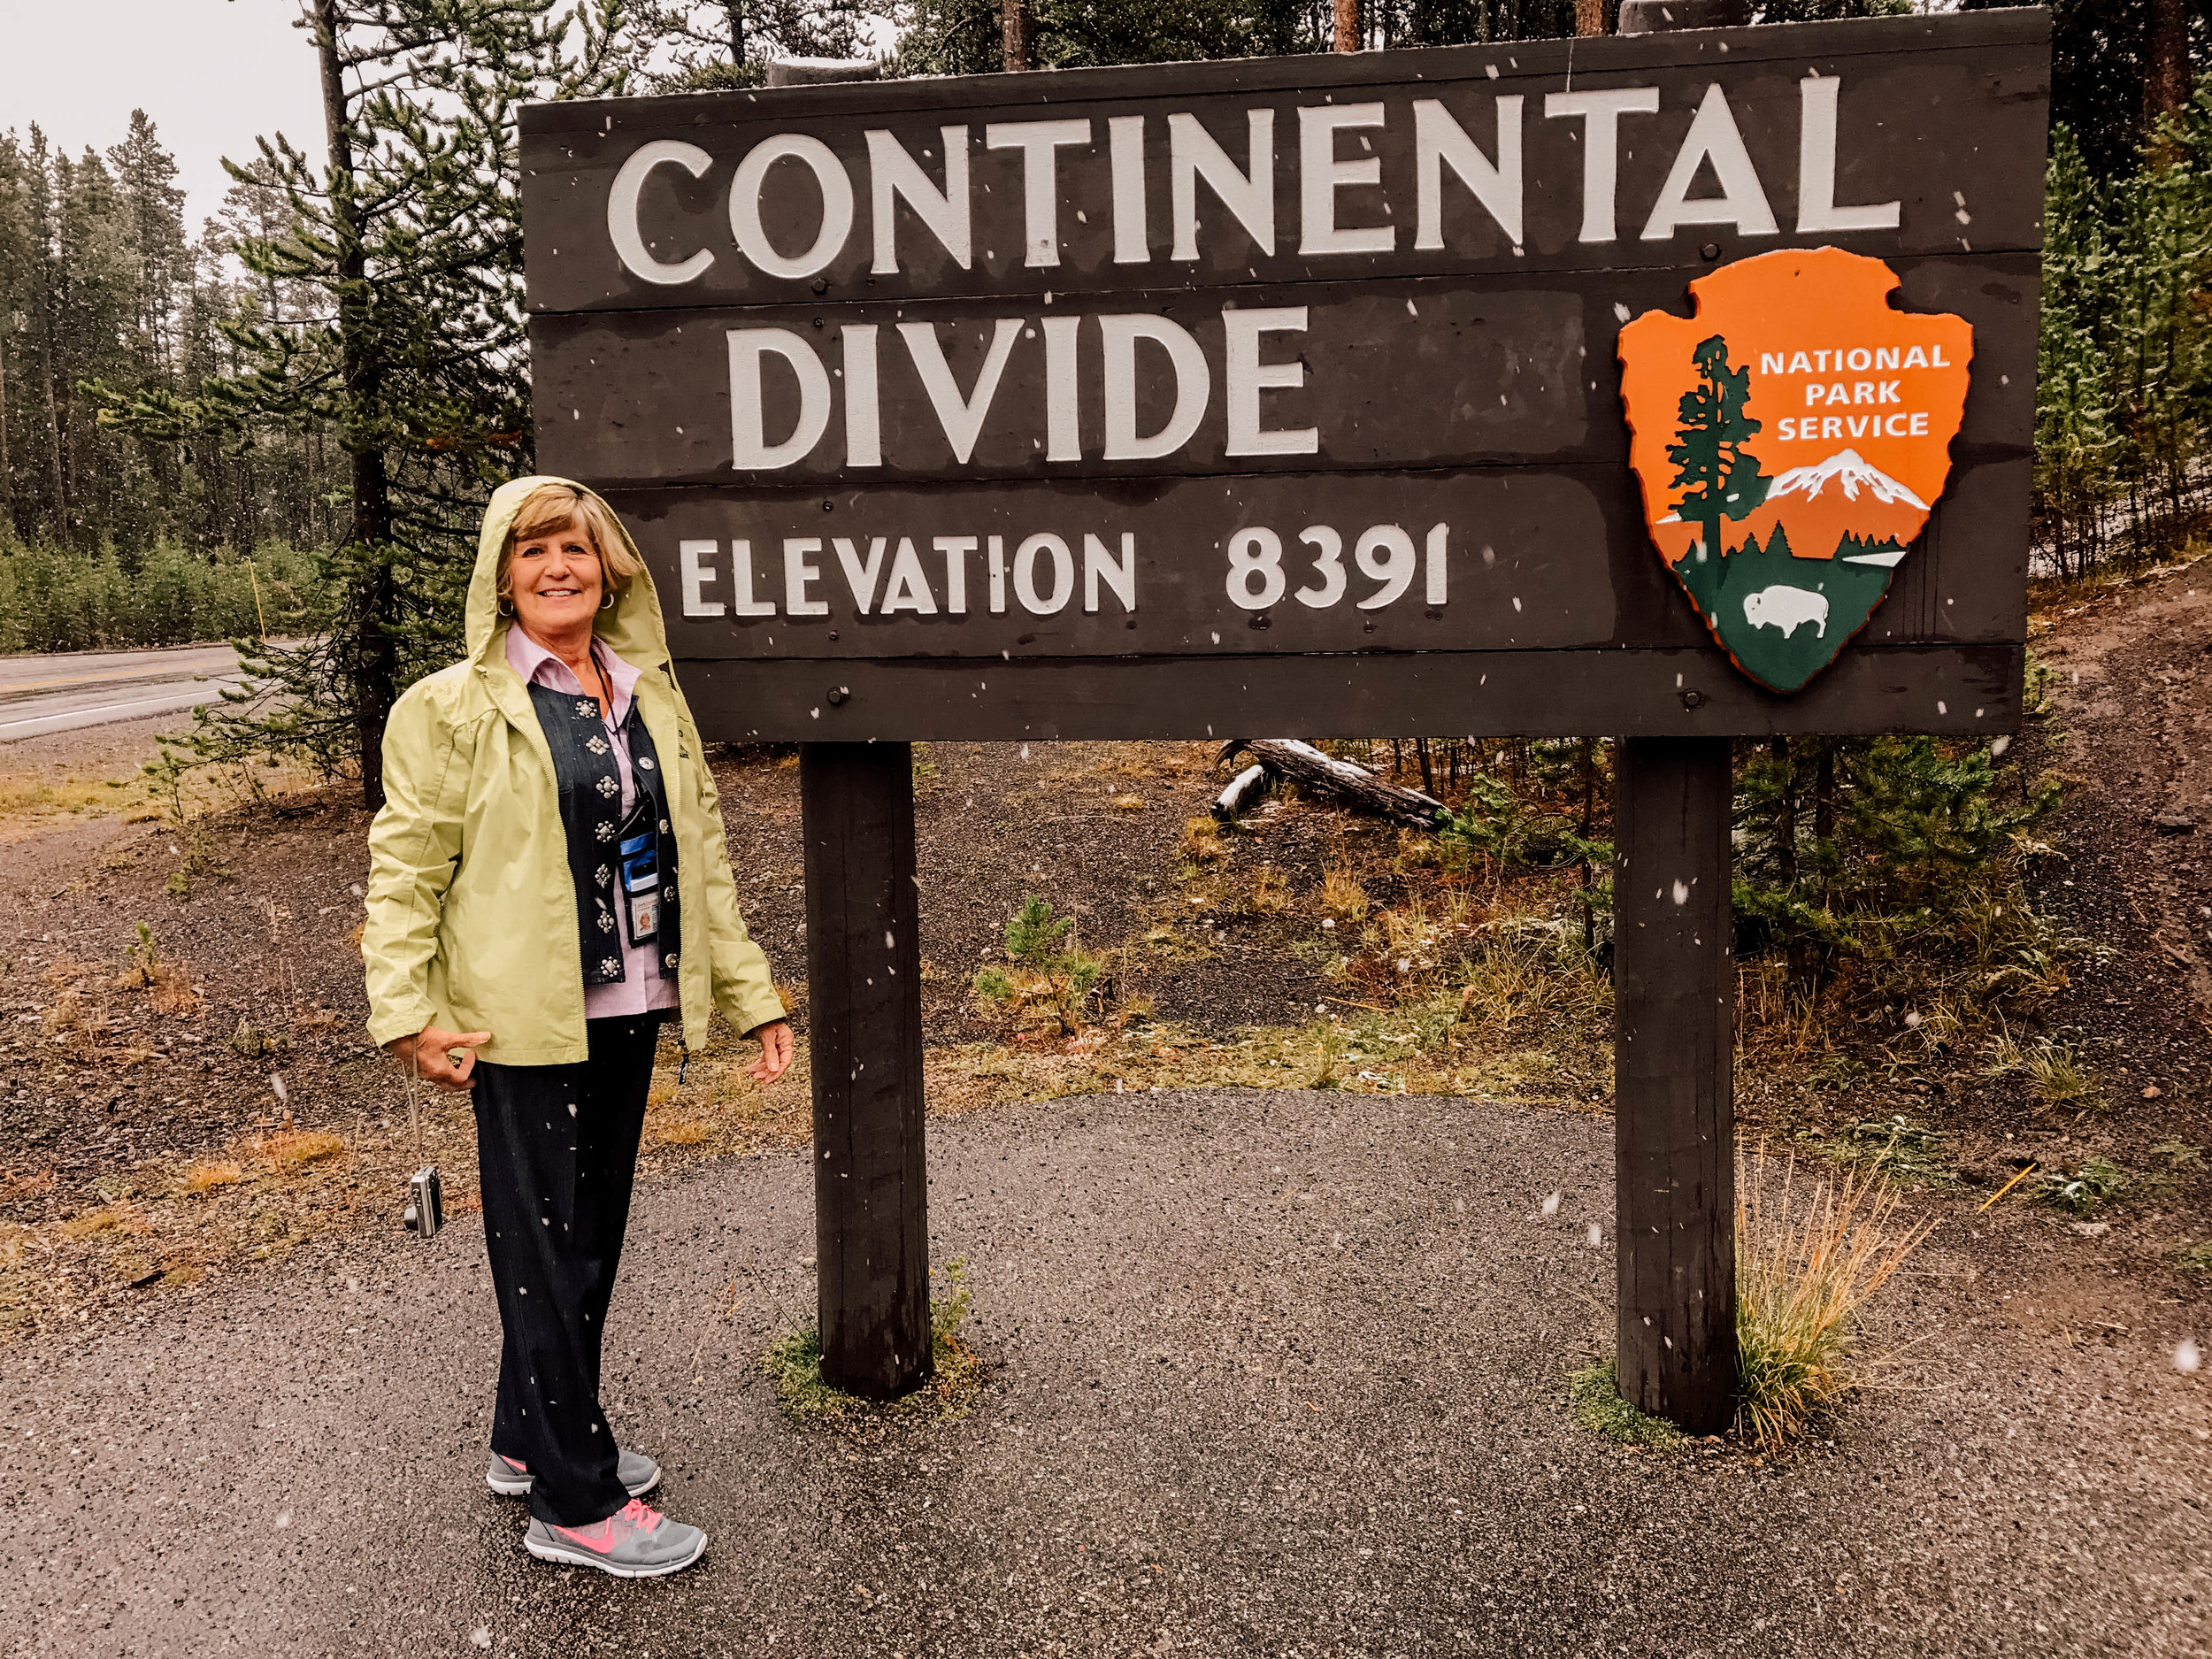 Wyoming_Yellowstone_AdultTour_2017_LakeWales_ContinentalDivide_07.jpg